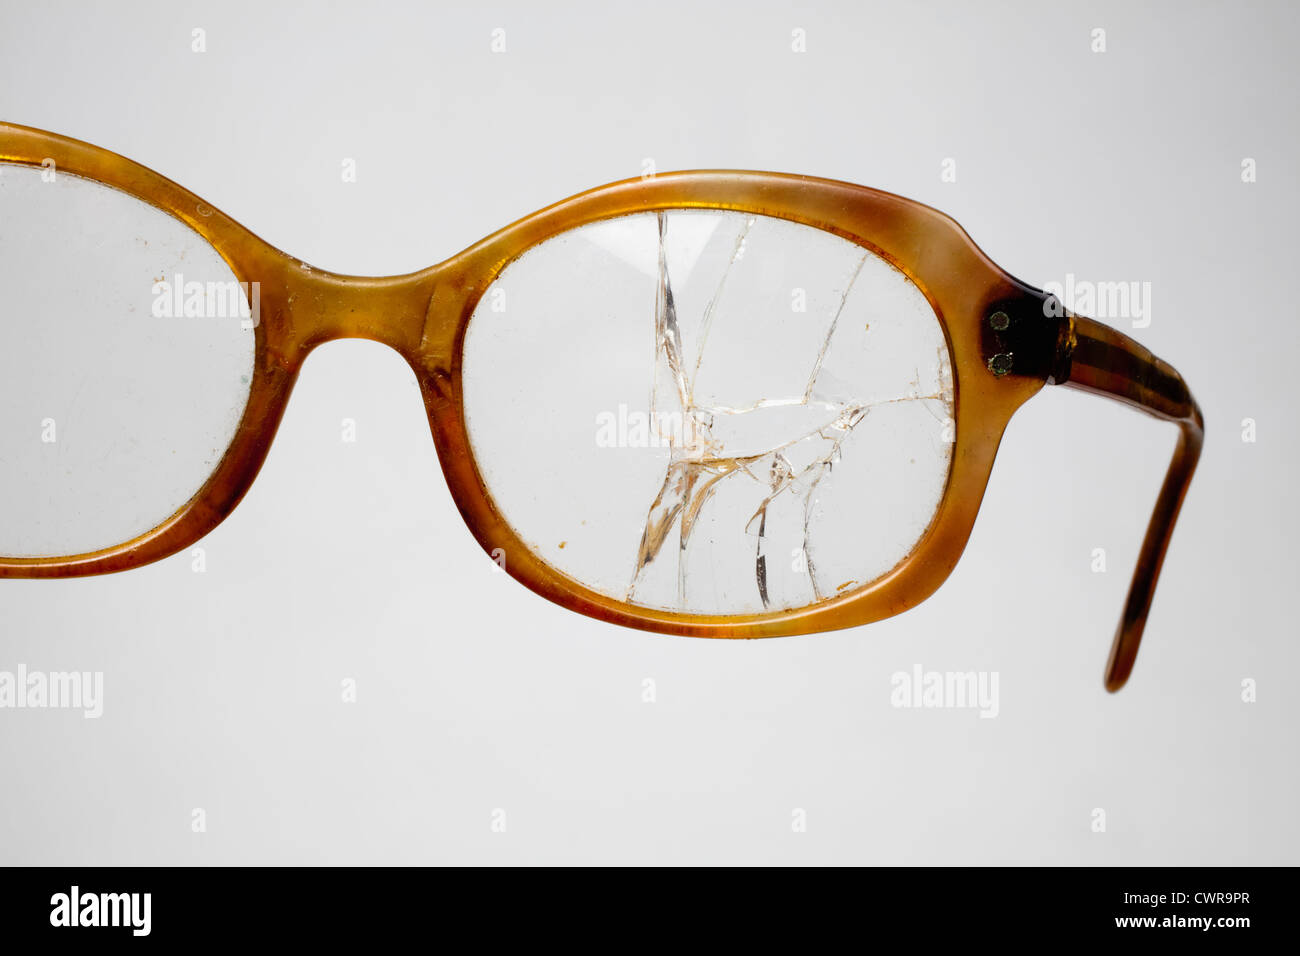 An old horn-rimmed glasses with a cracked lens - Stock Image